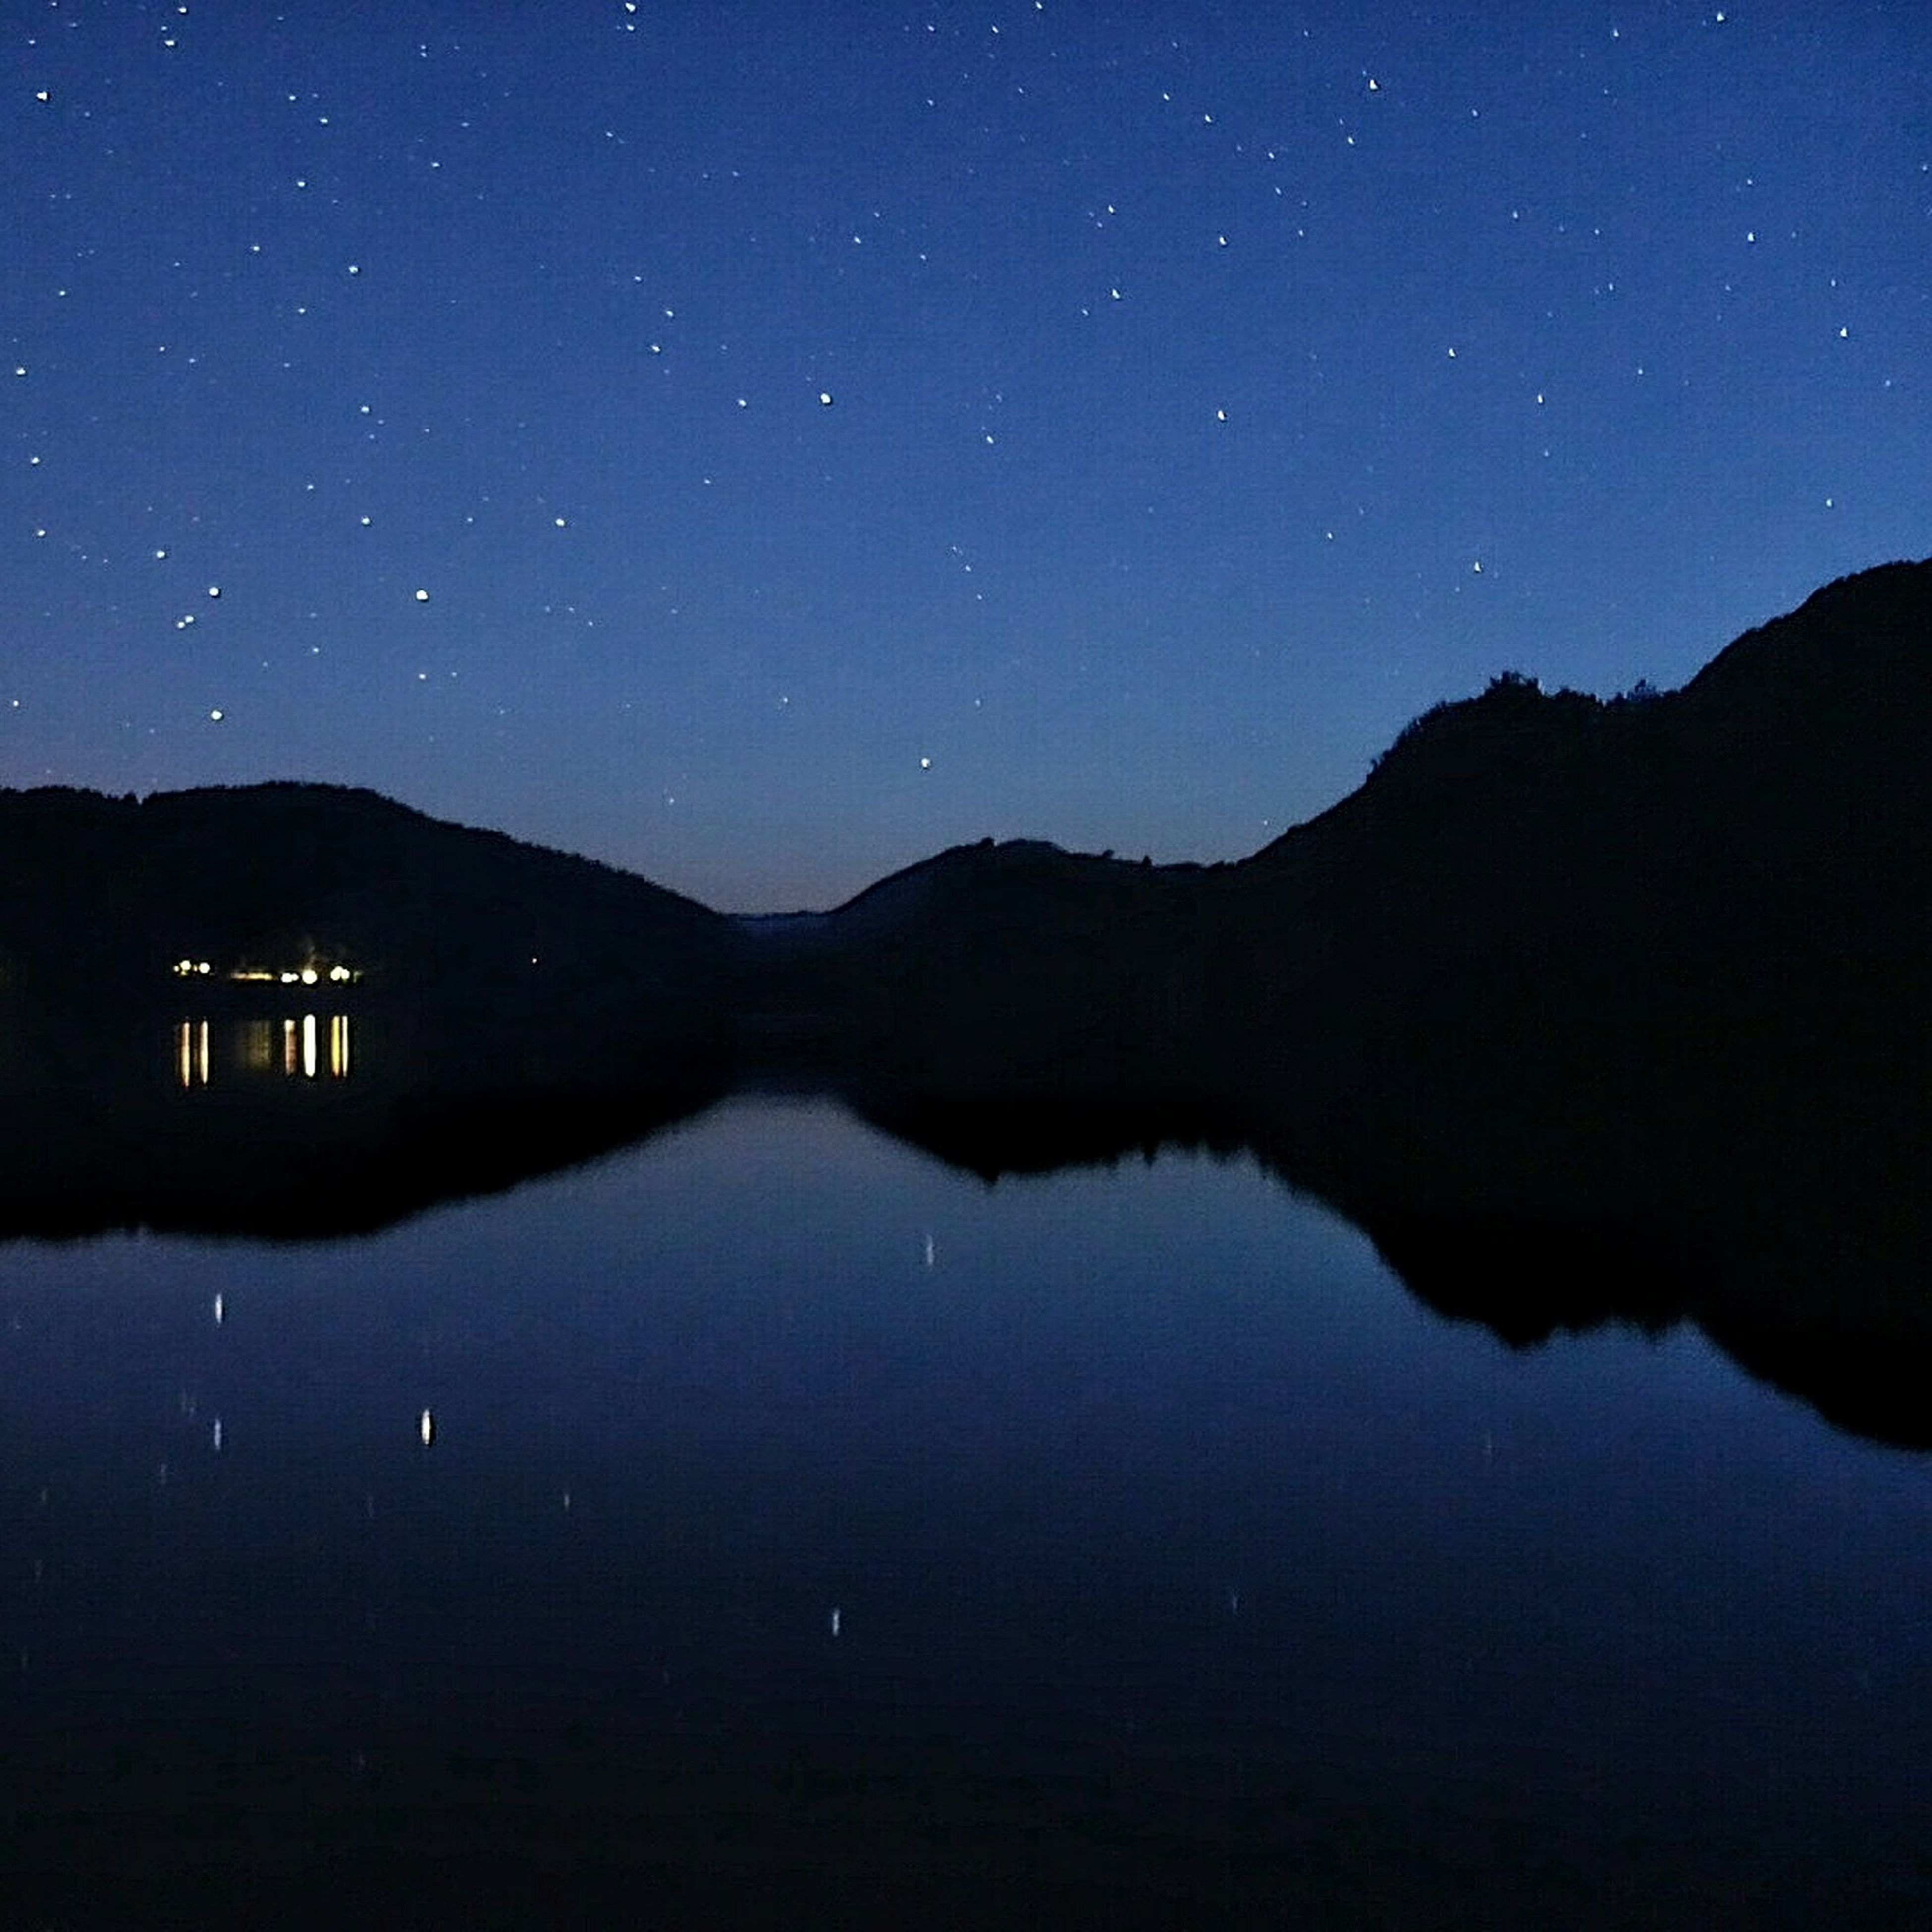 night, water, tranquil scene, scenics, tranquility, reflection, star - space, beauty in nature, sky, illuminated, mountain, star field, lake, astronomy, nature, waterfront, blue, idyllic, majestic, mountain range